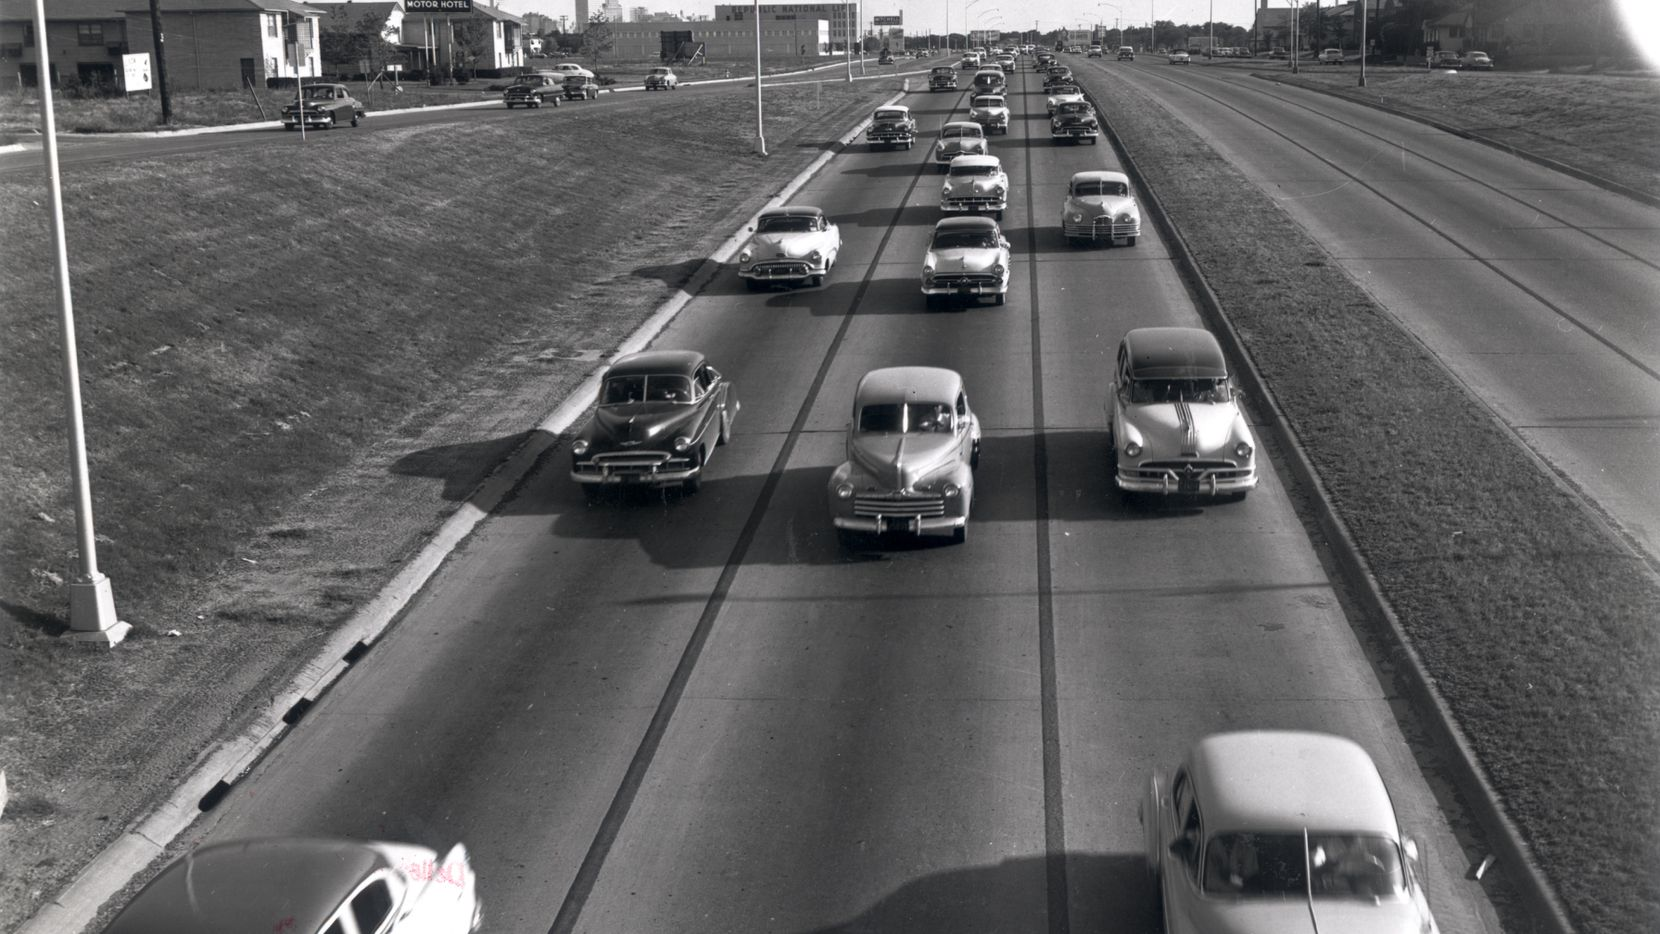 North Central Expressway in the early 1950s. The view is looking south toward downtown from the Fitzhugh overpass. On the left is the Dallasite Motor Hotel at 4126 North Central Expressway.